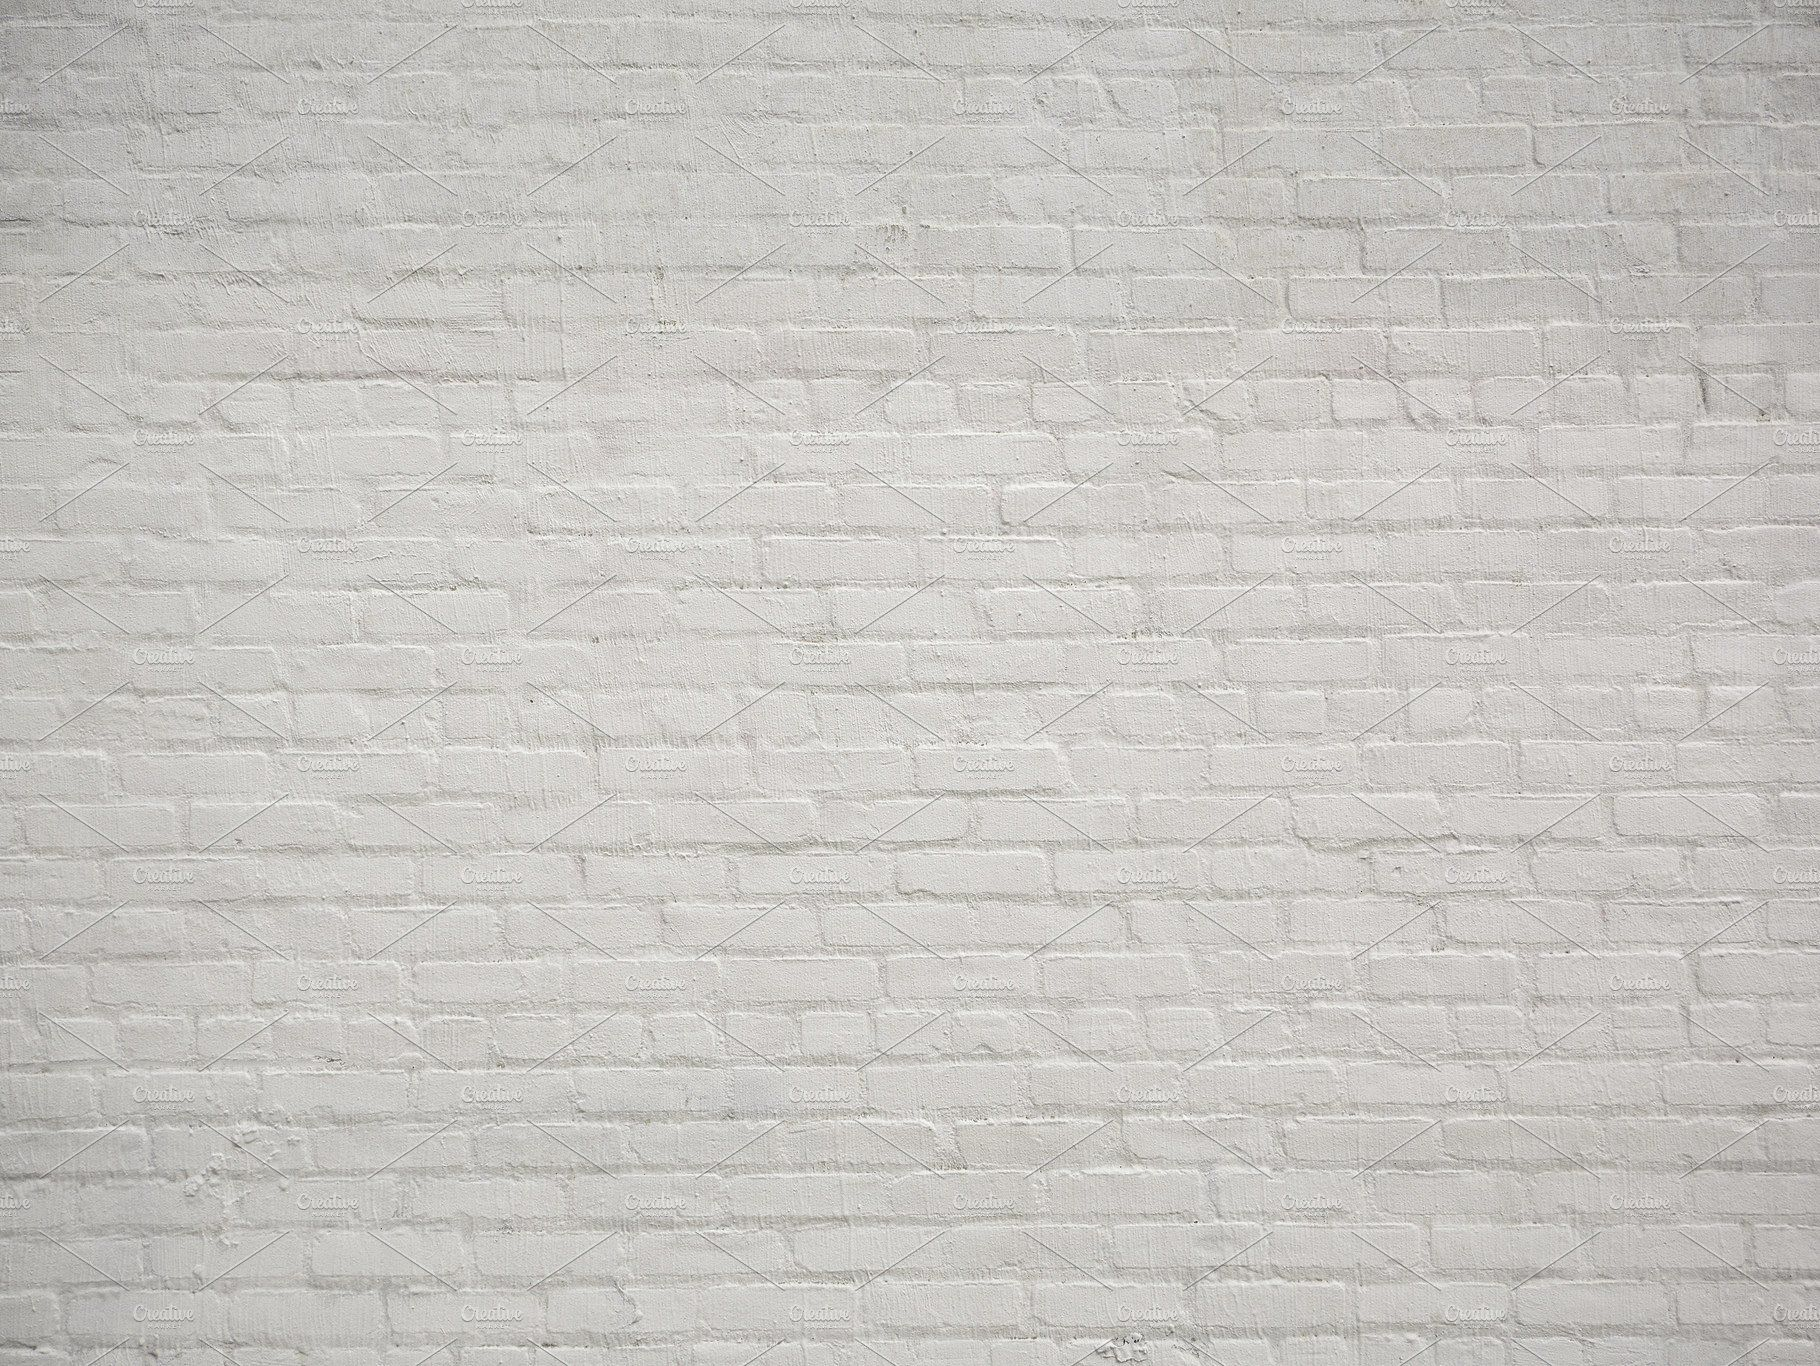 White Brick Wall Pattern Background Wall Patterns Brick Wall White Brick